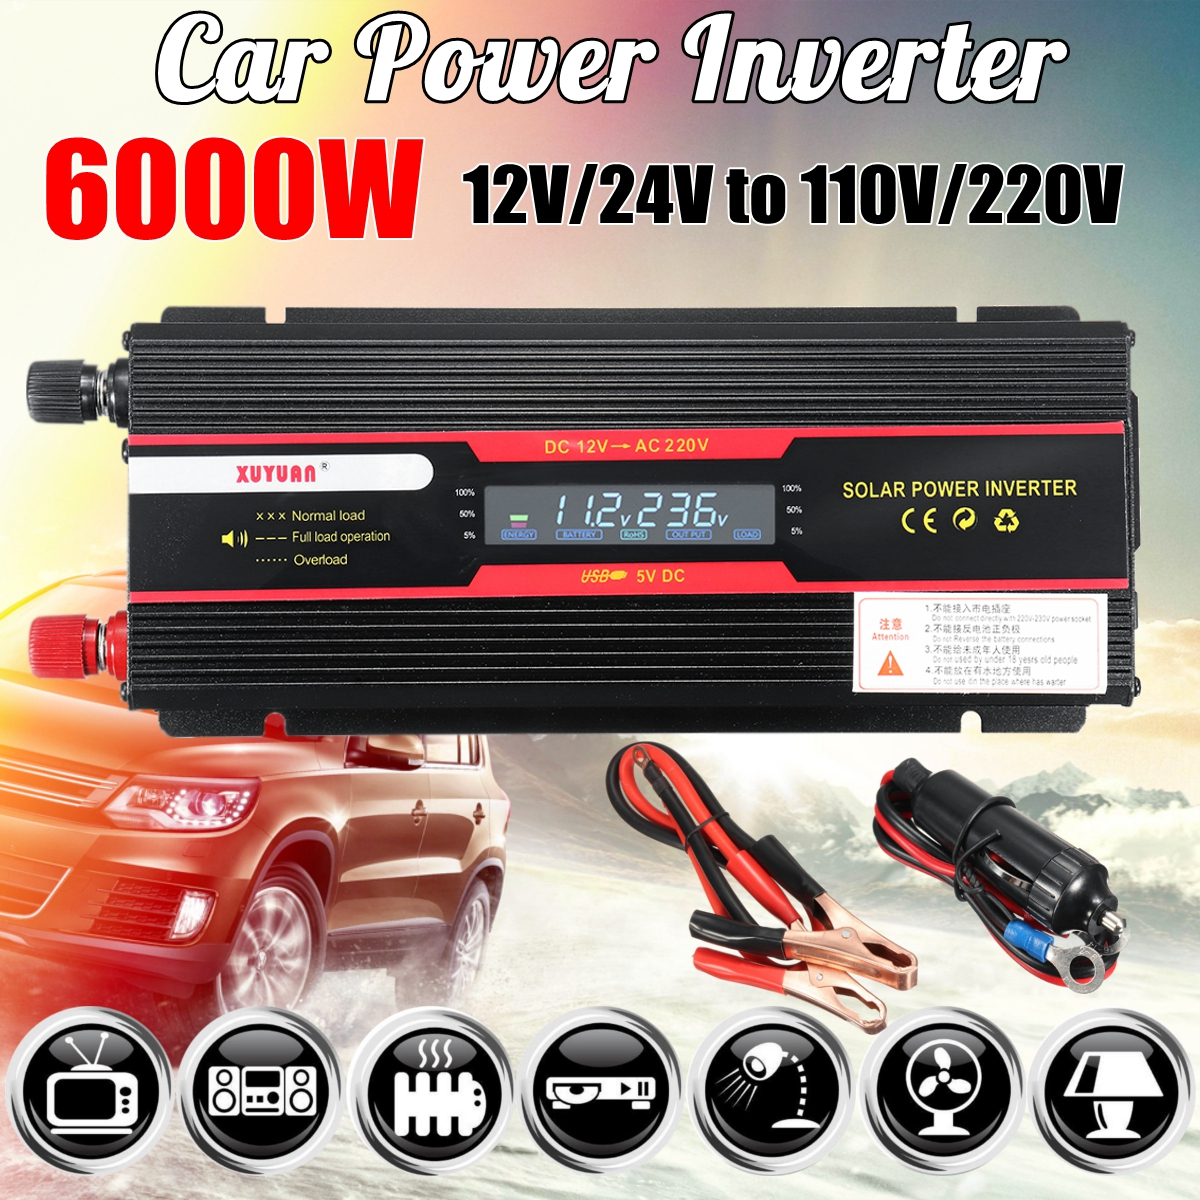 Auto Inverter 12 V 220 V 6000 W Pe ak Power Inverter Spannung Konverter Transformator 12 V/24 V zu 110 V/220 V Inverter + LCD Display